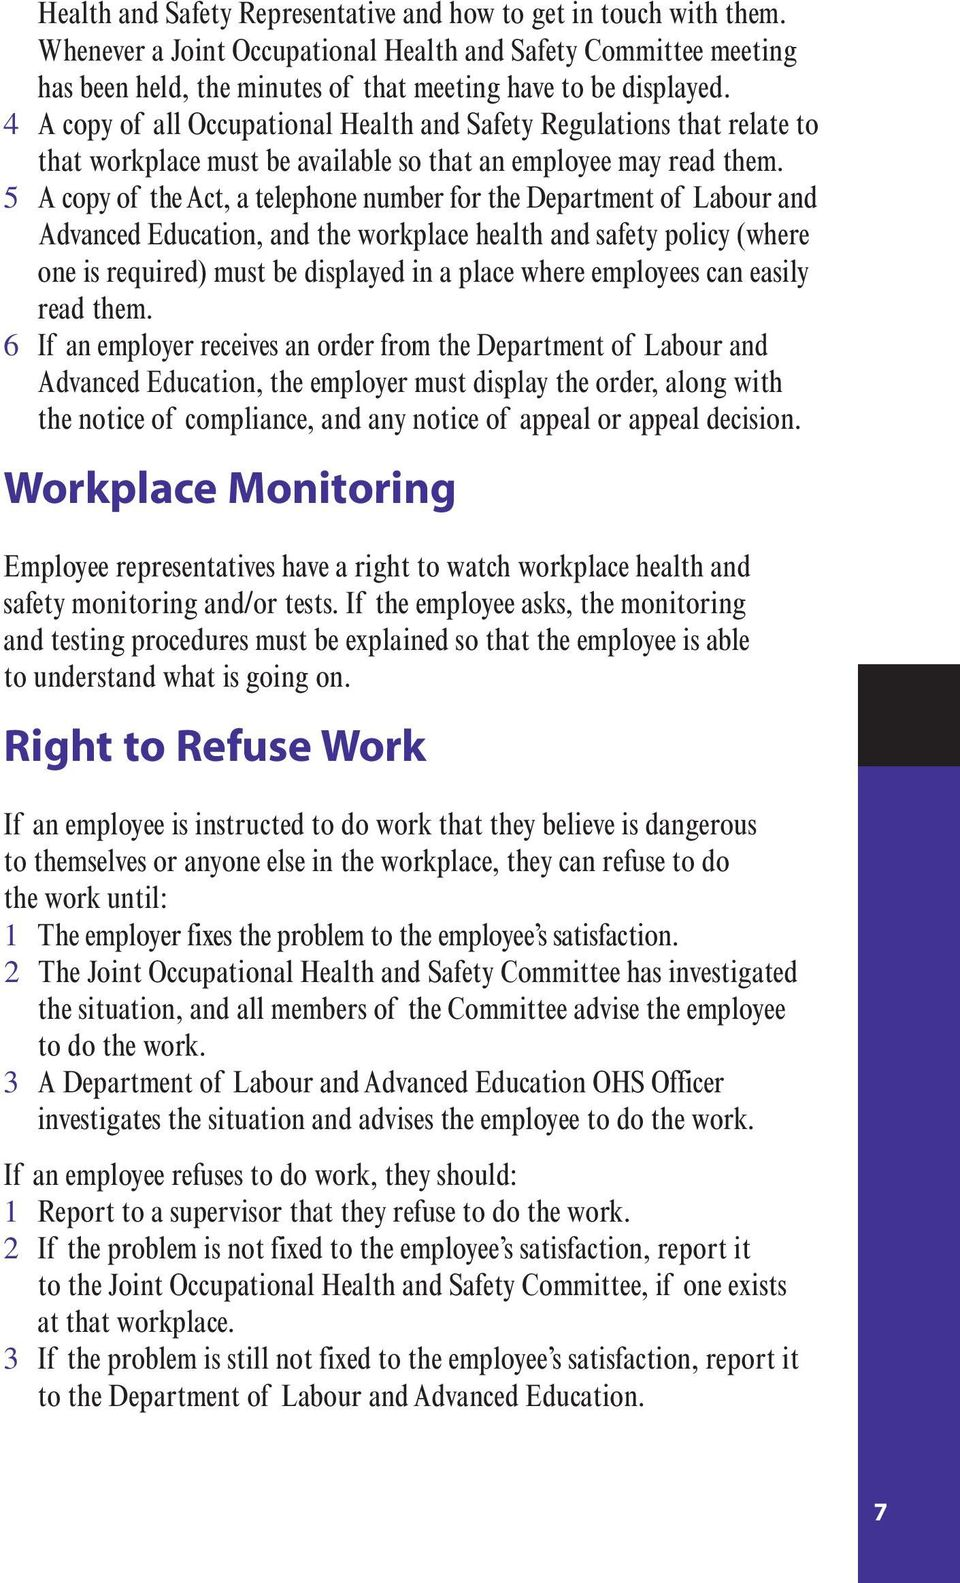 5 A copy of the Act, a telephone number for the Department of Labour and Advanced Education, and the workplace health and safety policy (where one is required) must be displayed in a place where